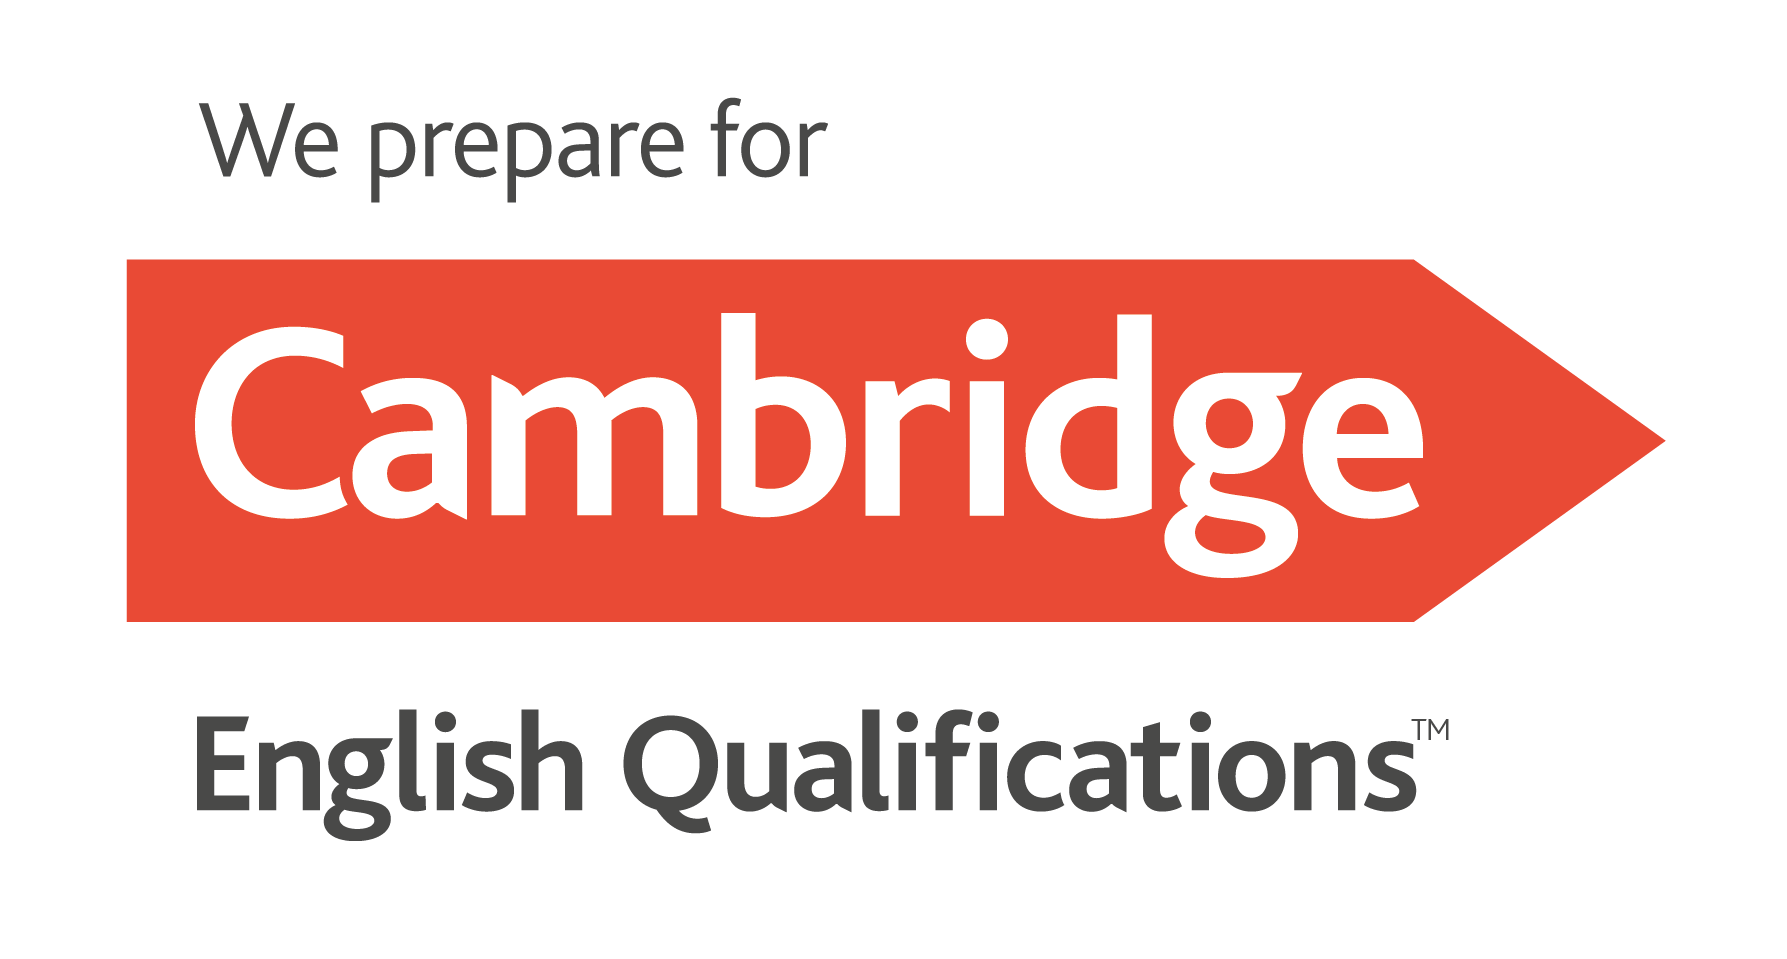 Il Volterra prepara agli esami Cambridge English certificati